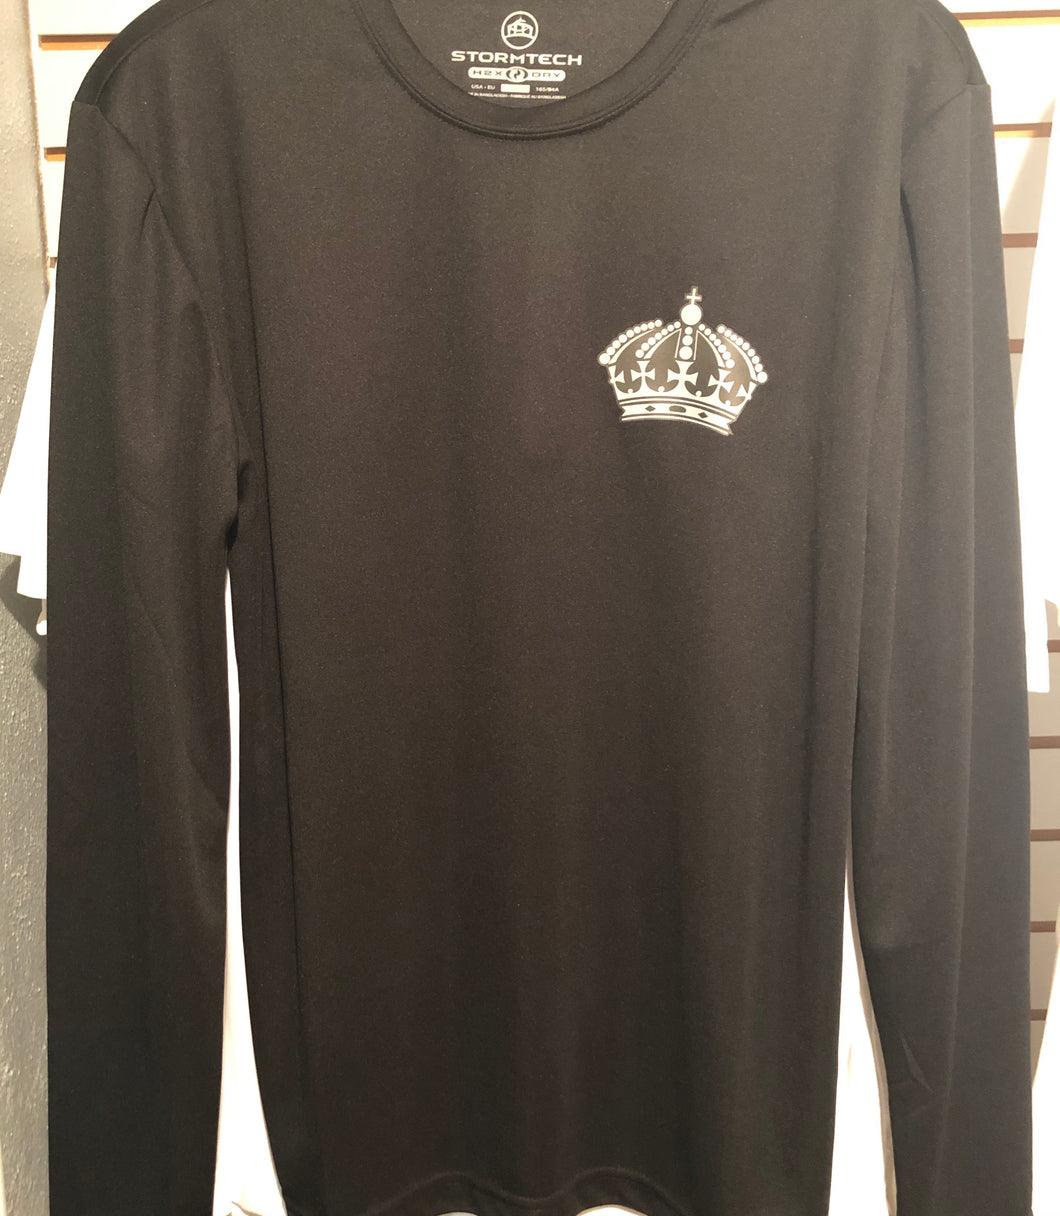 Stormtech Black Long Sleeve